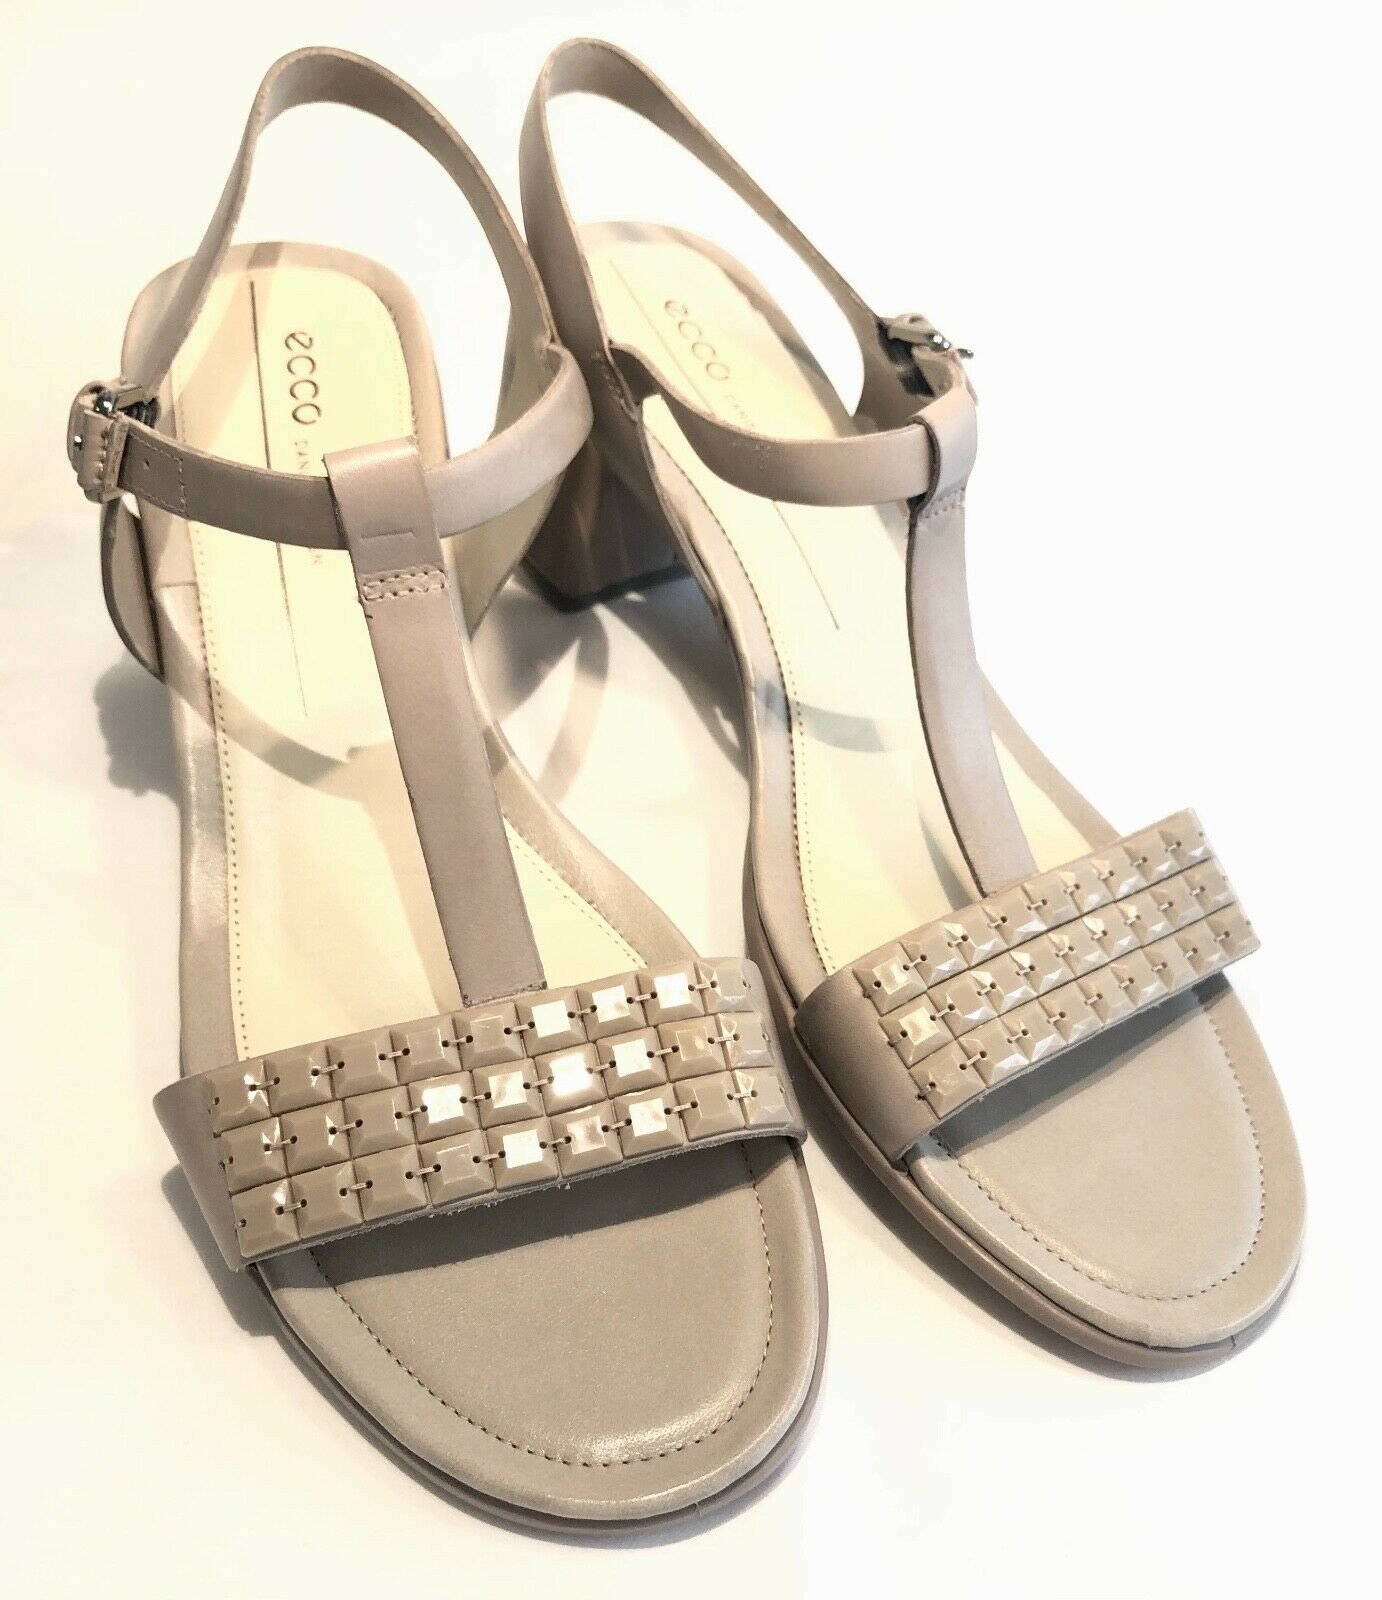 ECCO SHAPE 35 T BAR TAUPE LEATHER EMBELLISHED SANDAL SIZE 42 8 NWOT DAY TO NIGHT